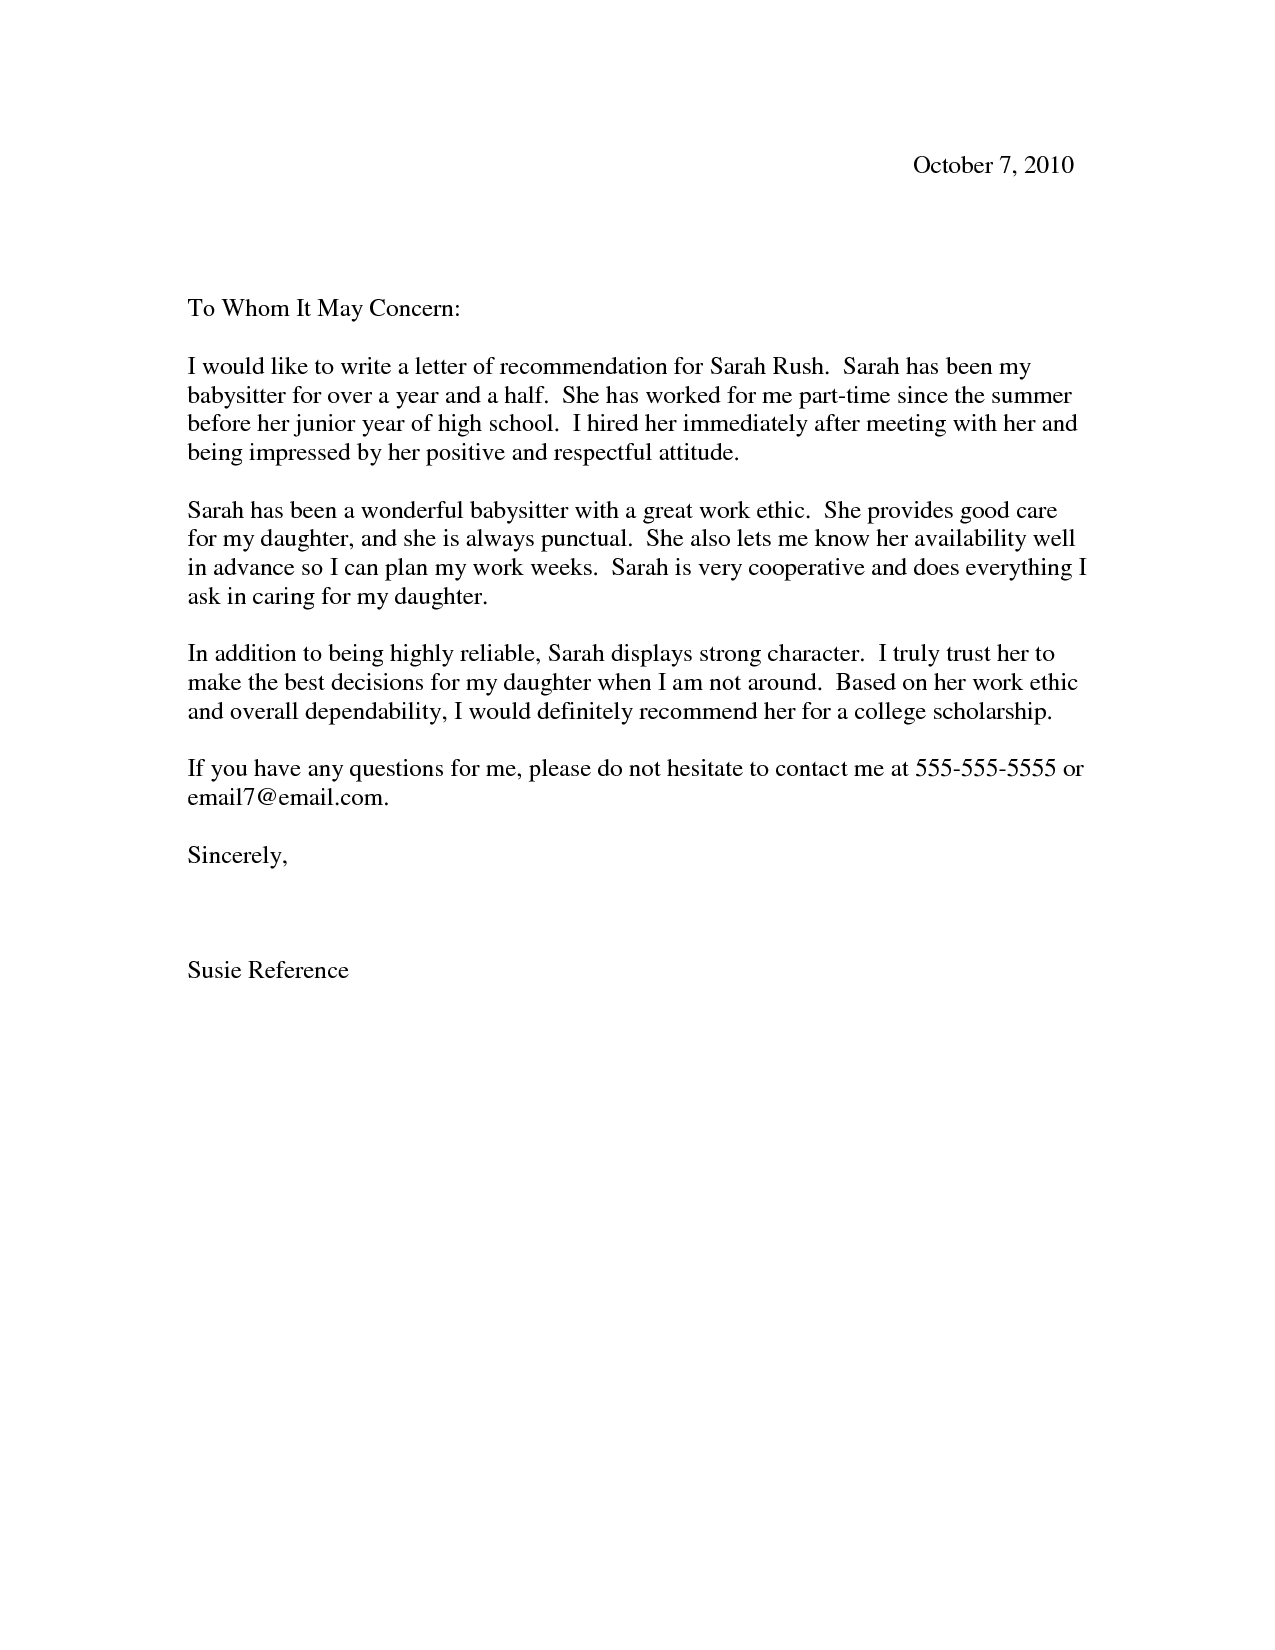 recommendation letter template – Formats for Letters of Recommendation